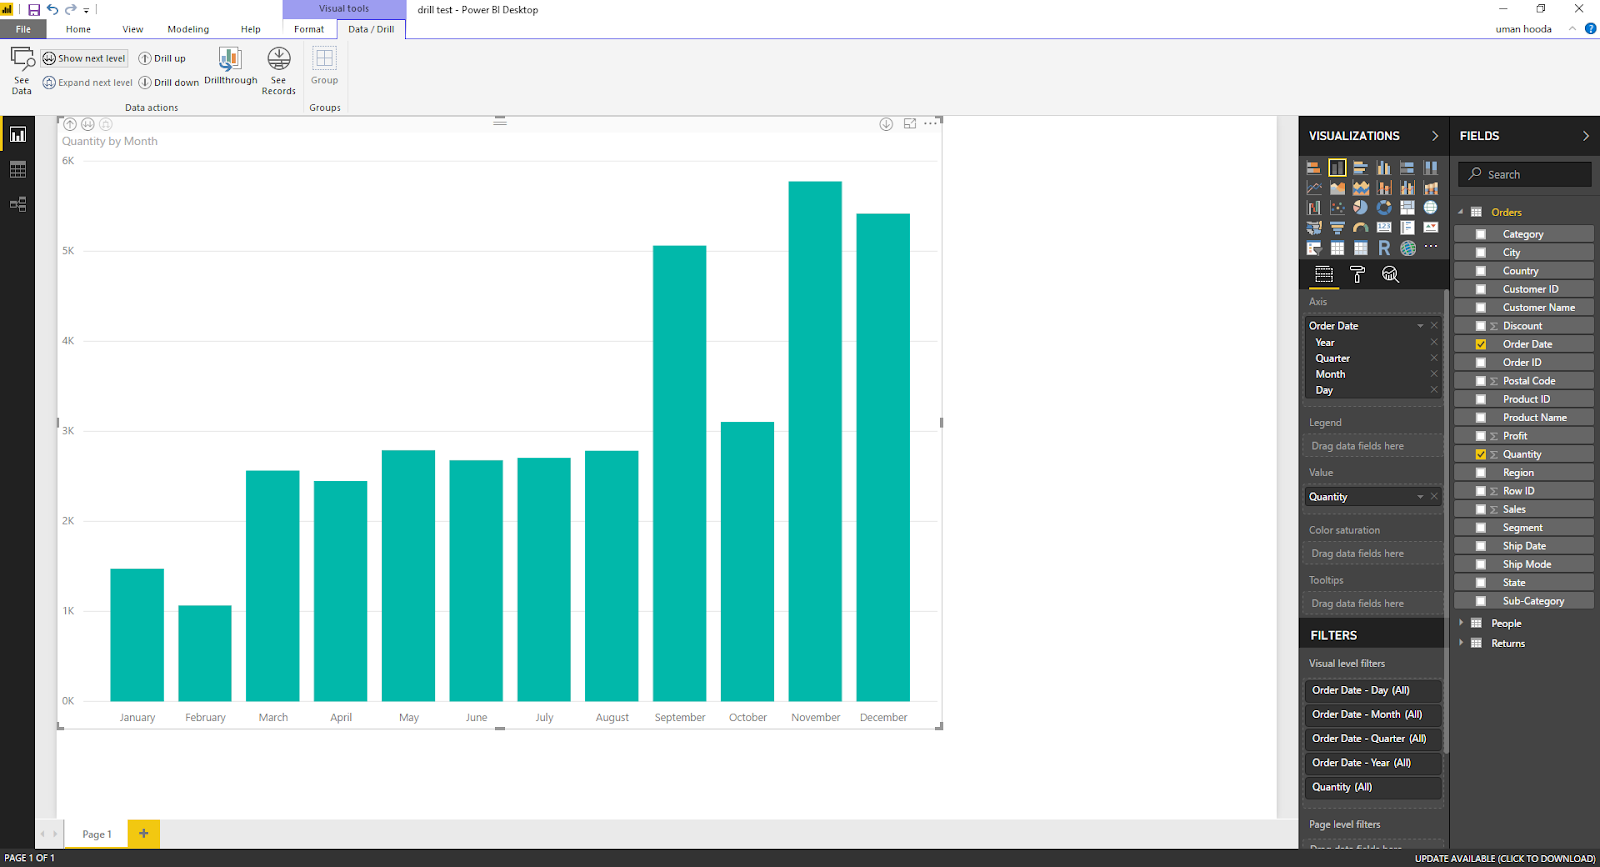 Drill In / Out on Your Data For Different Dates In Microsoft Power BI 44